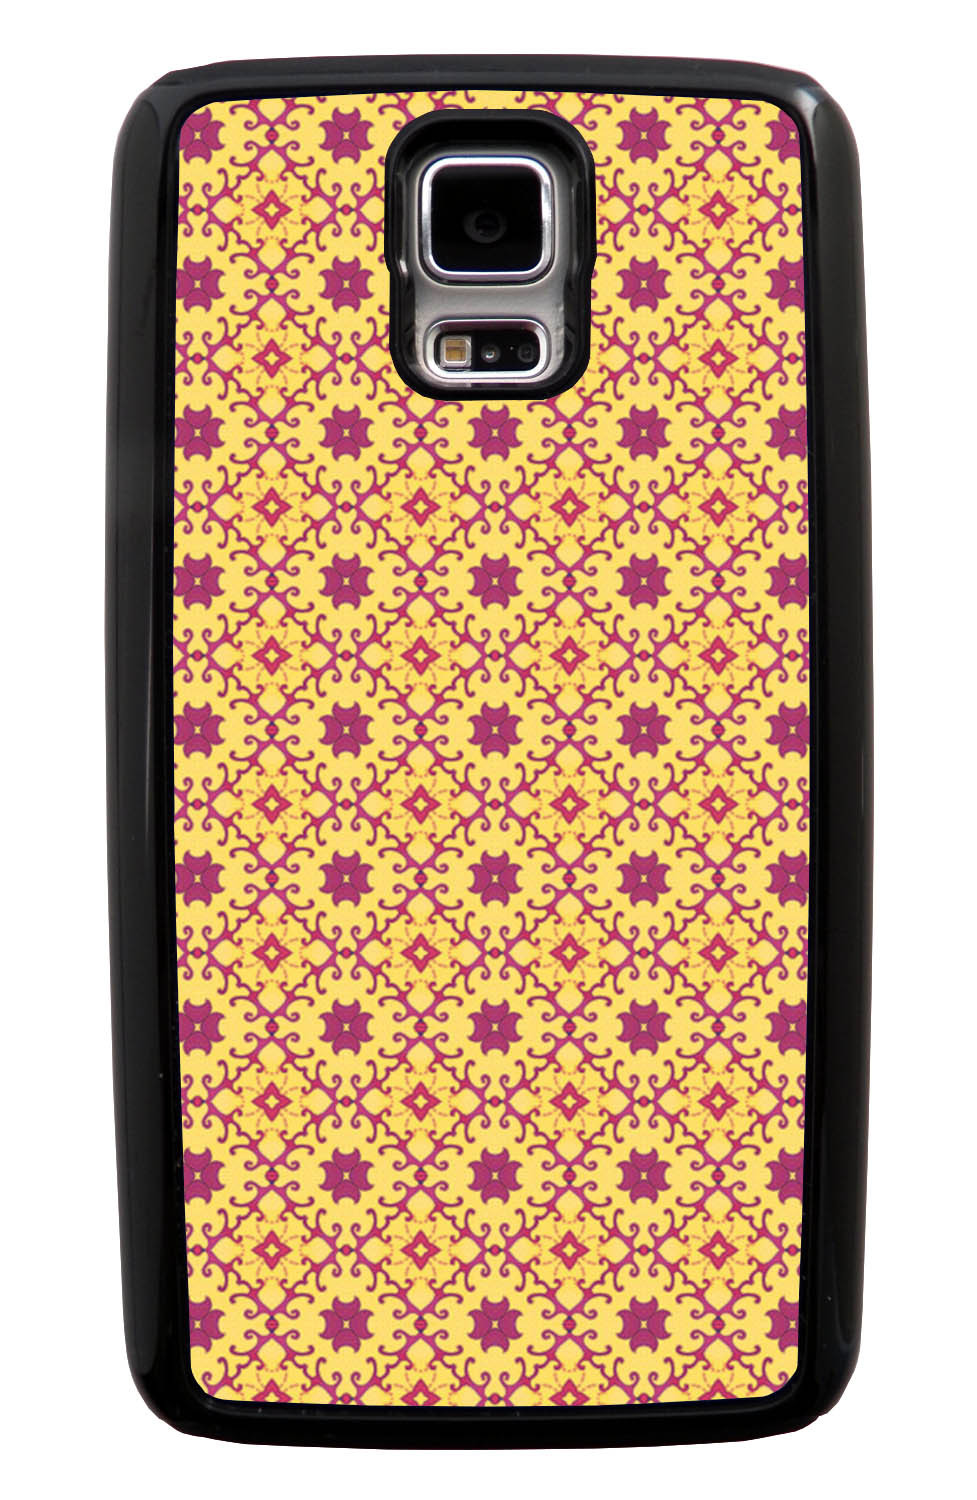 Samsung Galaxy S5 / SV Abstract Case - Red and Yellow - Flower Petal Like - Black Tough Hybrid Case